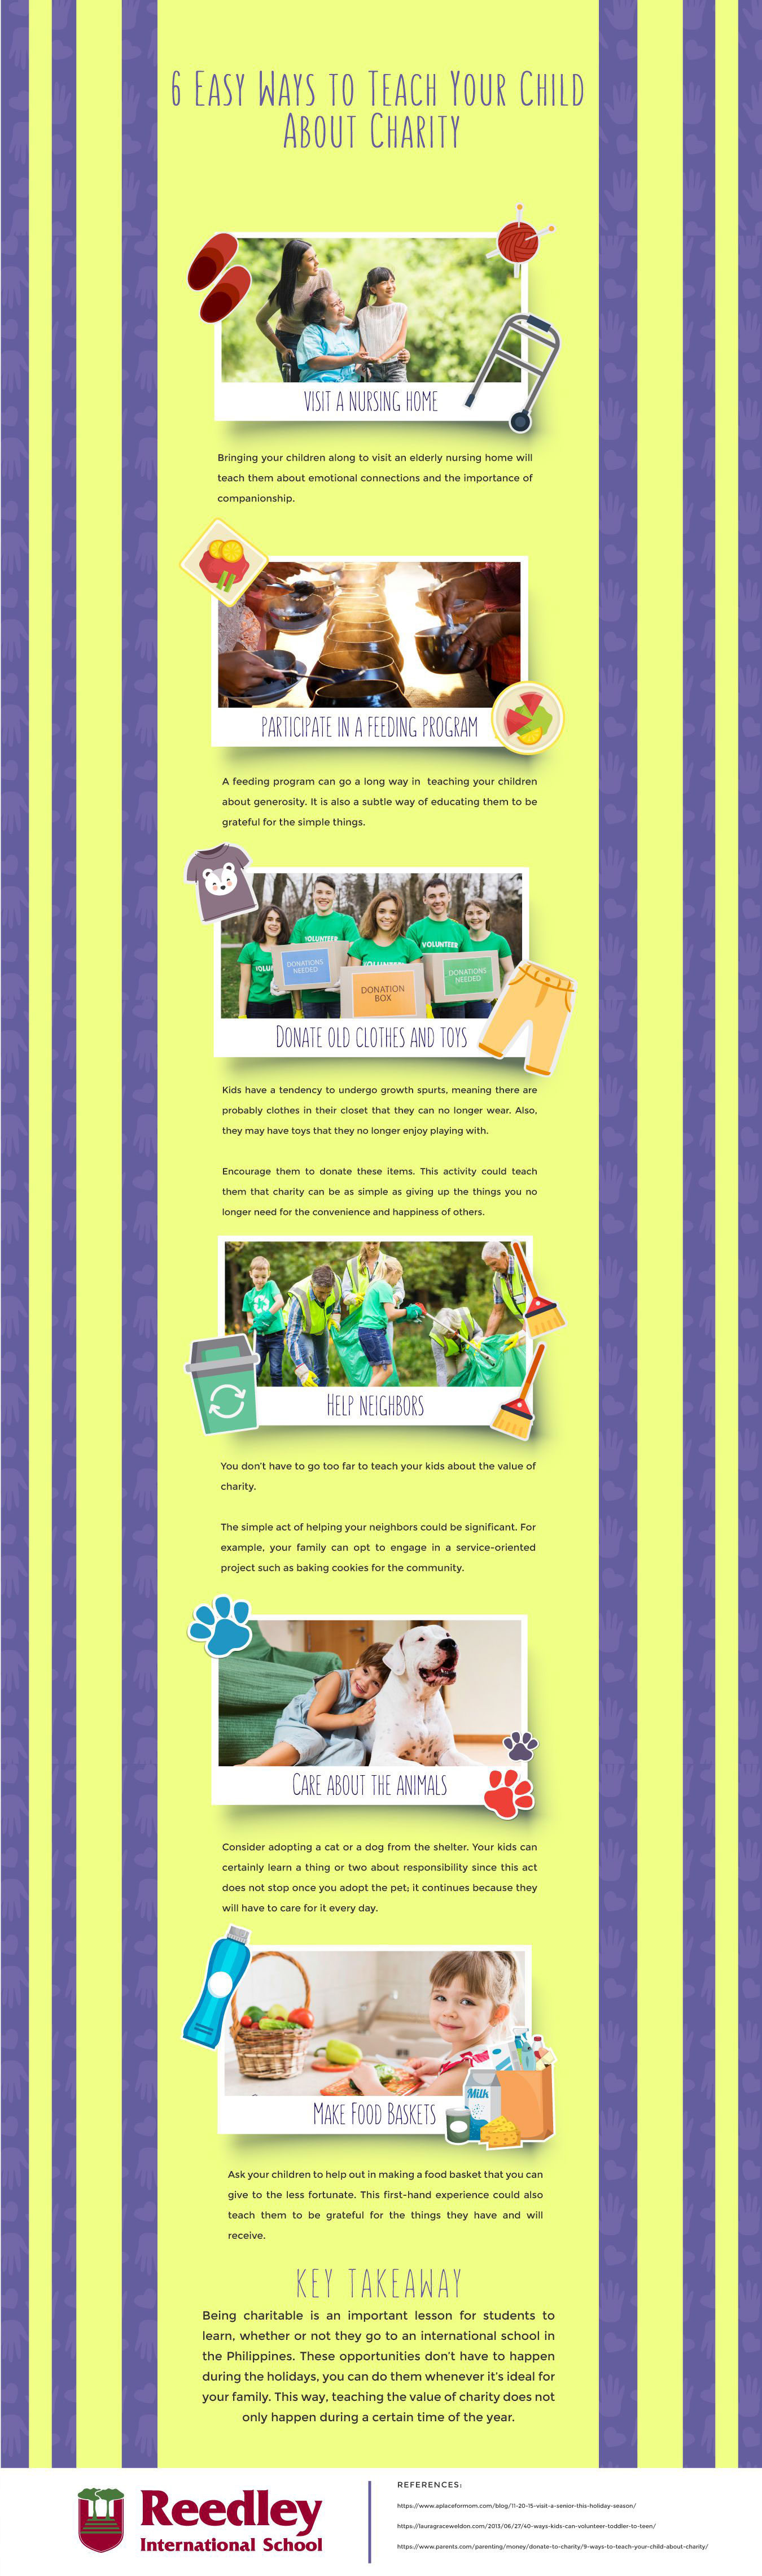 6-Easy-Ways-to-Teach-Your-Child-About-Charity_infog